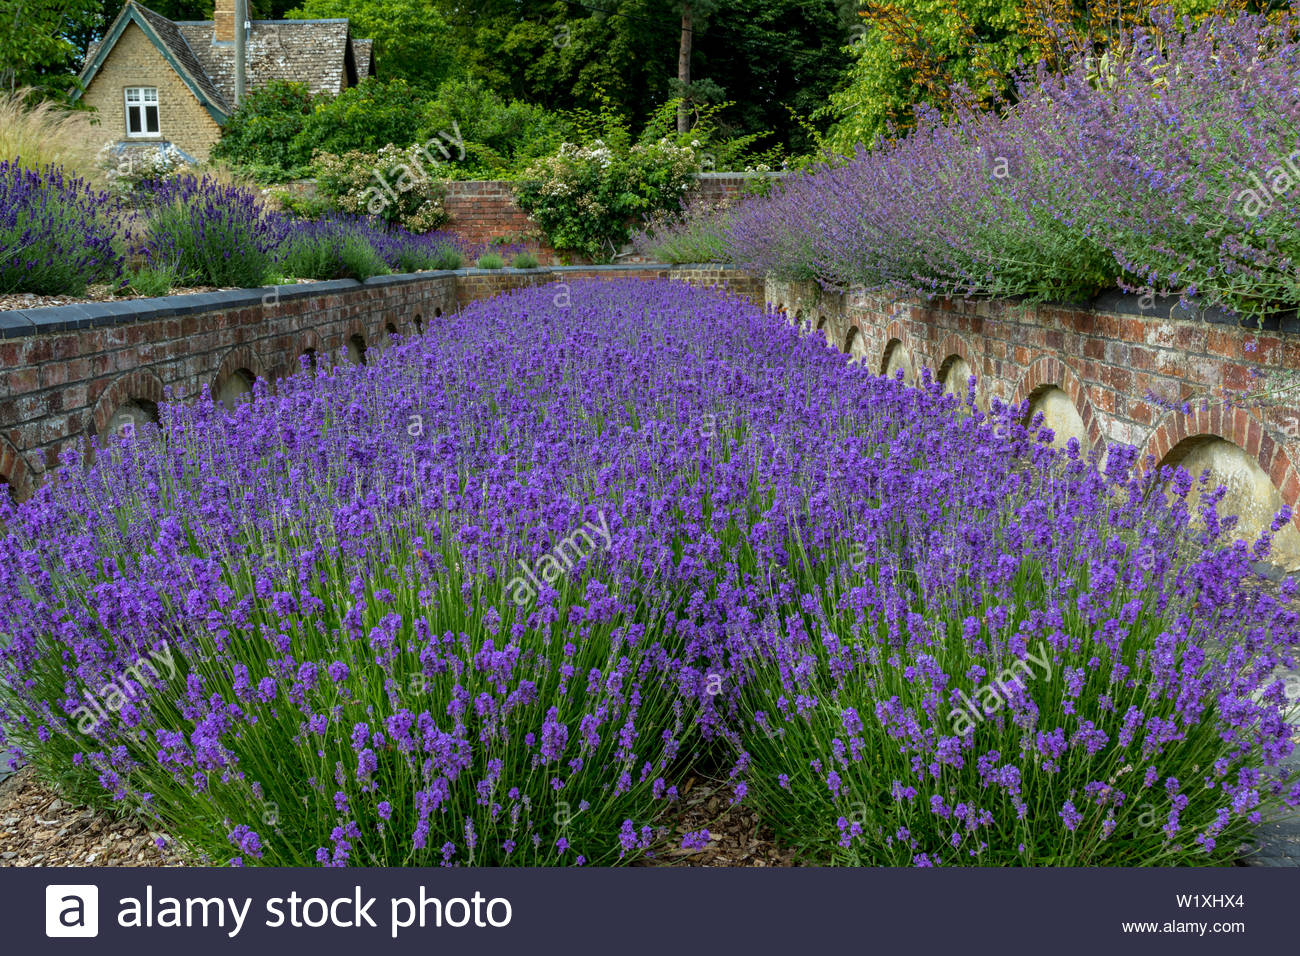 A drift of English Lavender, in the gardens of Blenheim Palace, Oxford, UK - Stock Image